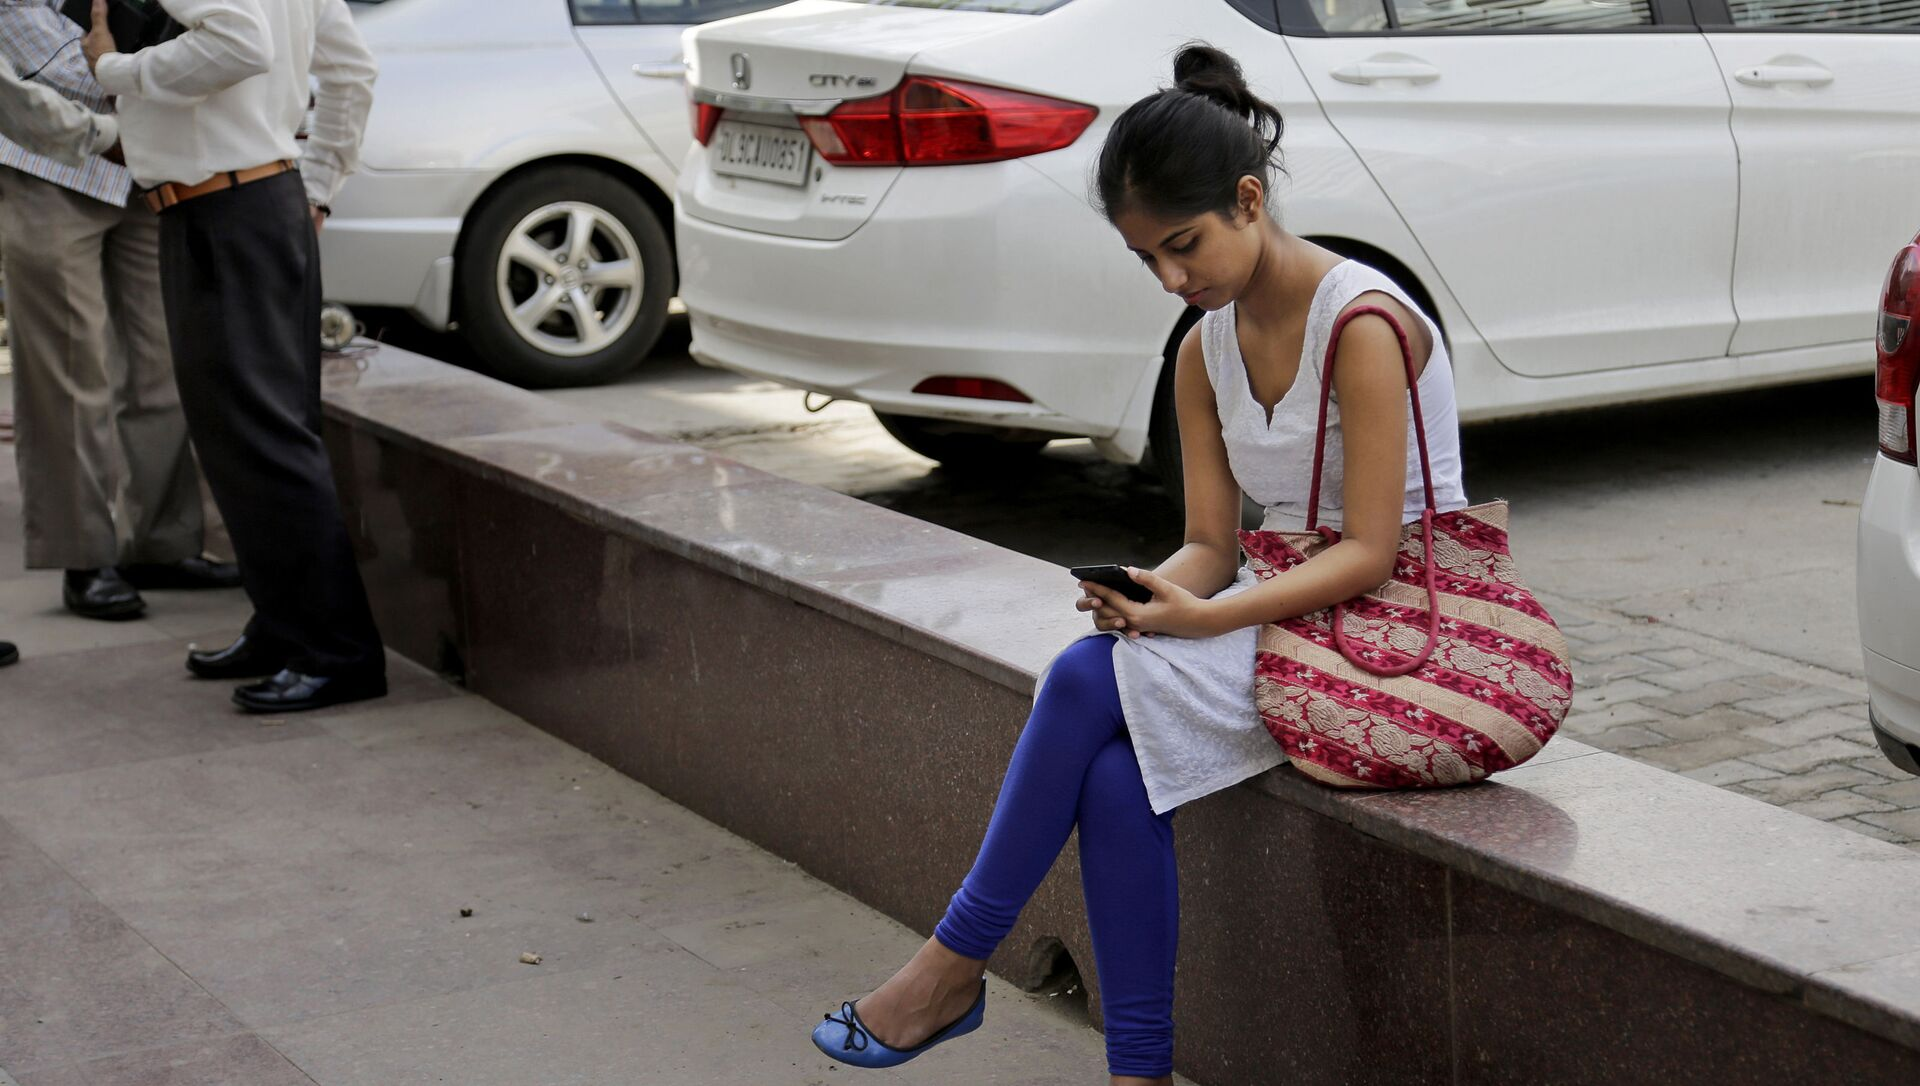 An Indian woman uses her mobile phone  in New Delhi, India, Tuesday, Sept. 22, 2015 - Sputnik International, 1920, 27.07.2021